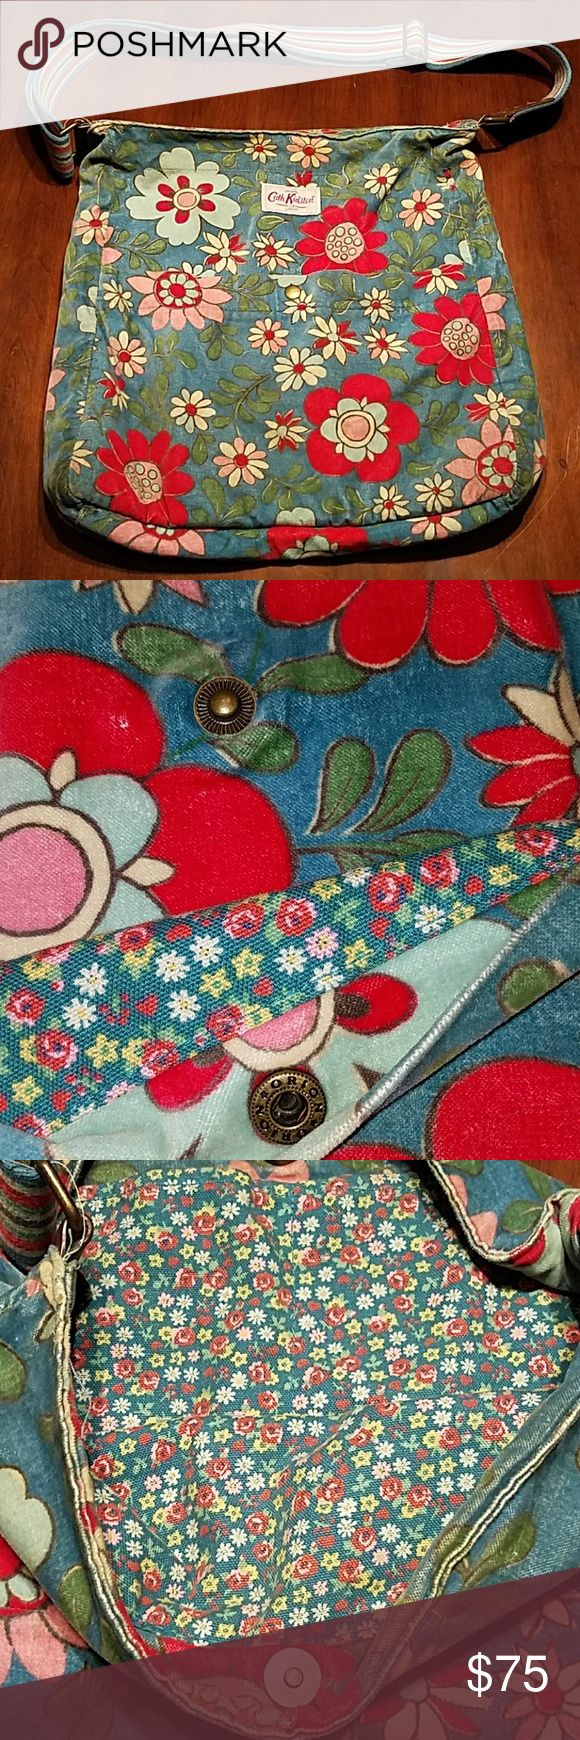 Cath Kidston London Floral Velvet Shoulder Bag Gorgeous cotton velvet large floral print on the outside with front button pocket Pretty small floral print on cotton canvas inside with two deep pockets. Large & Like new! Cath Kidston London Bags Shoulder Bags